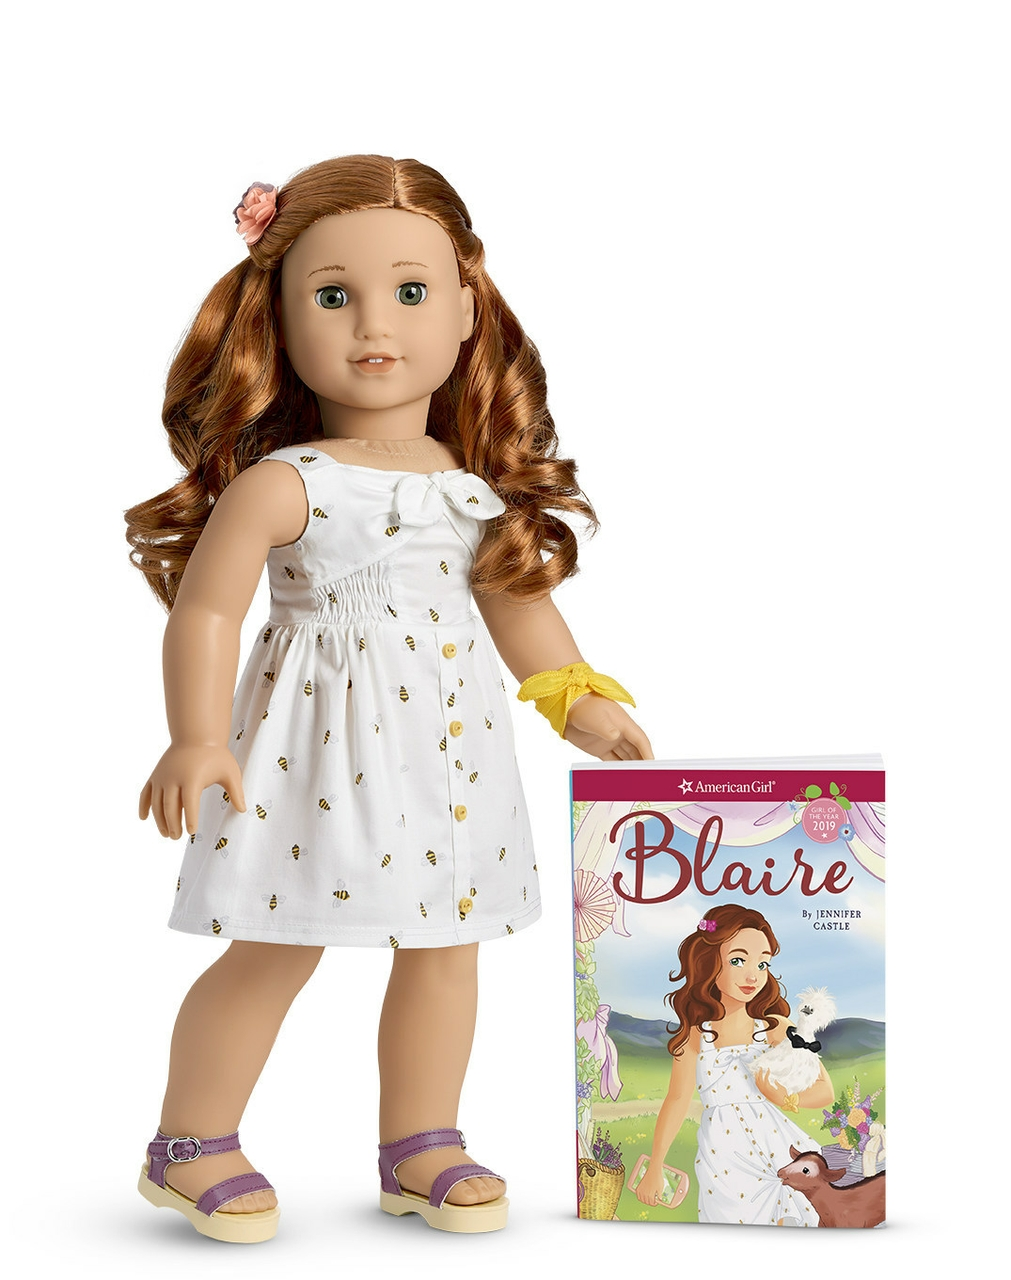 American Girl's 2019 Girl Of The Year(TM) Blaire Has The Recipe For Creating Meaningful Connections